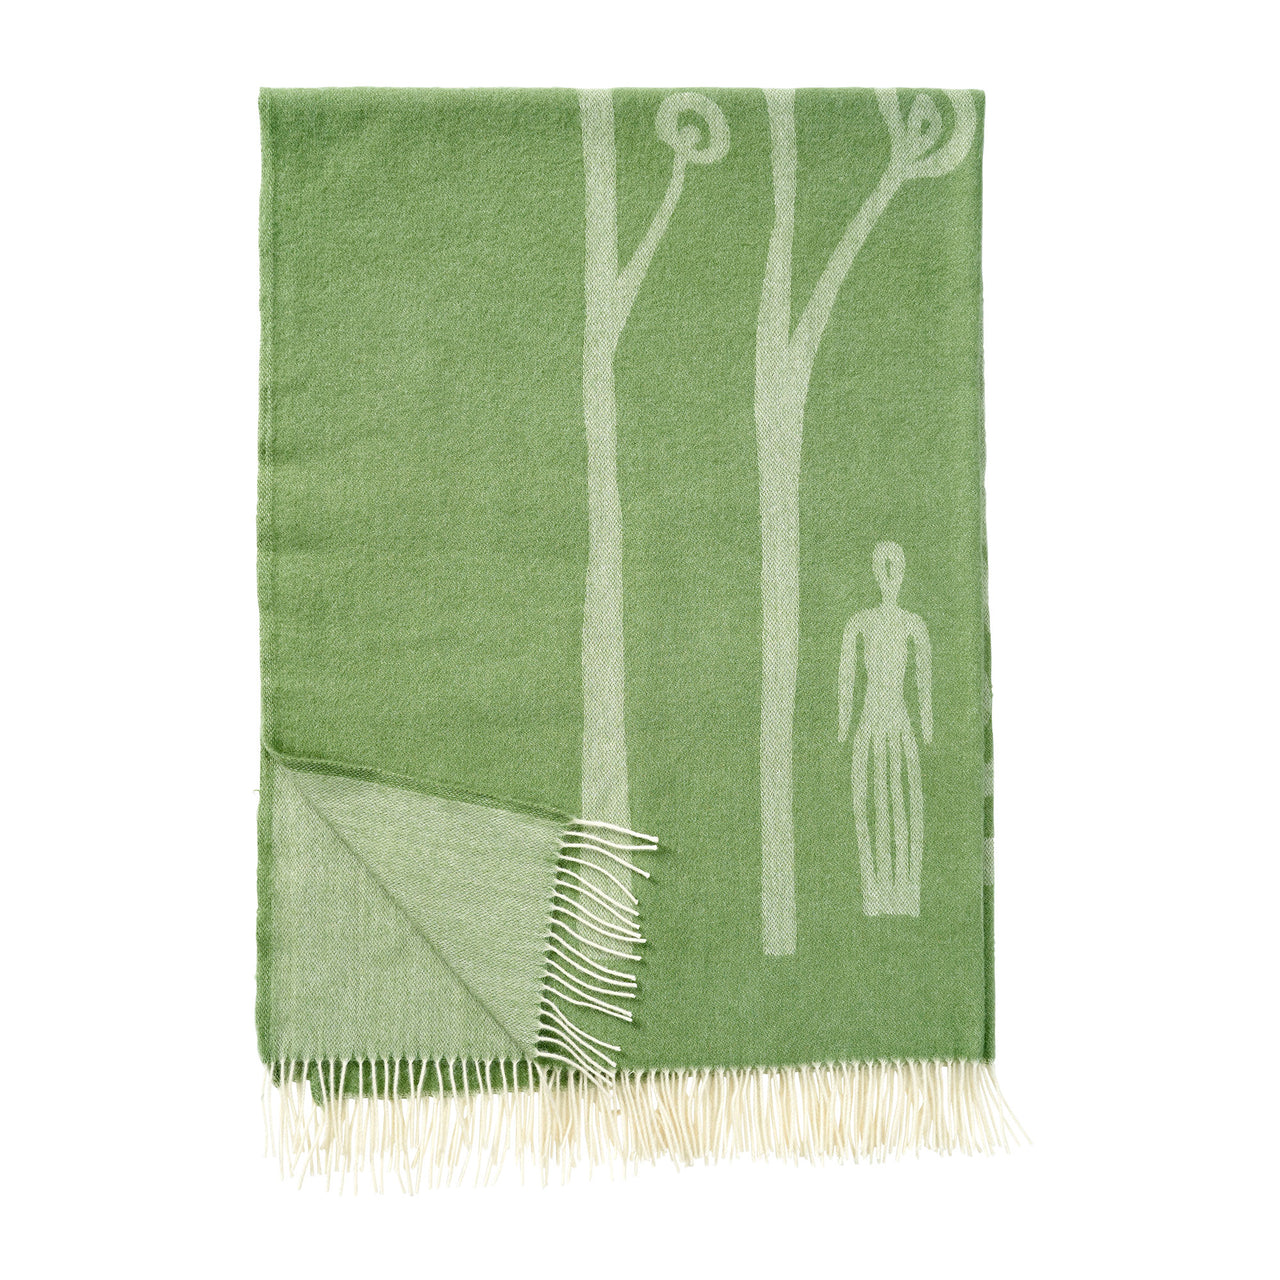 In The Woods Green 130x200cm Premium Wool Throw